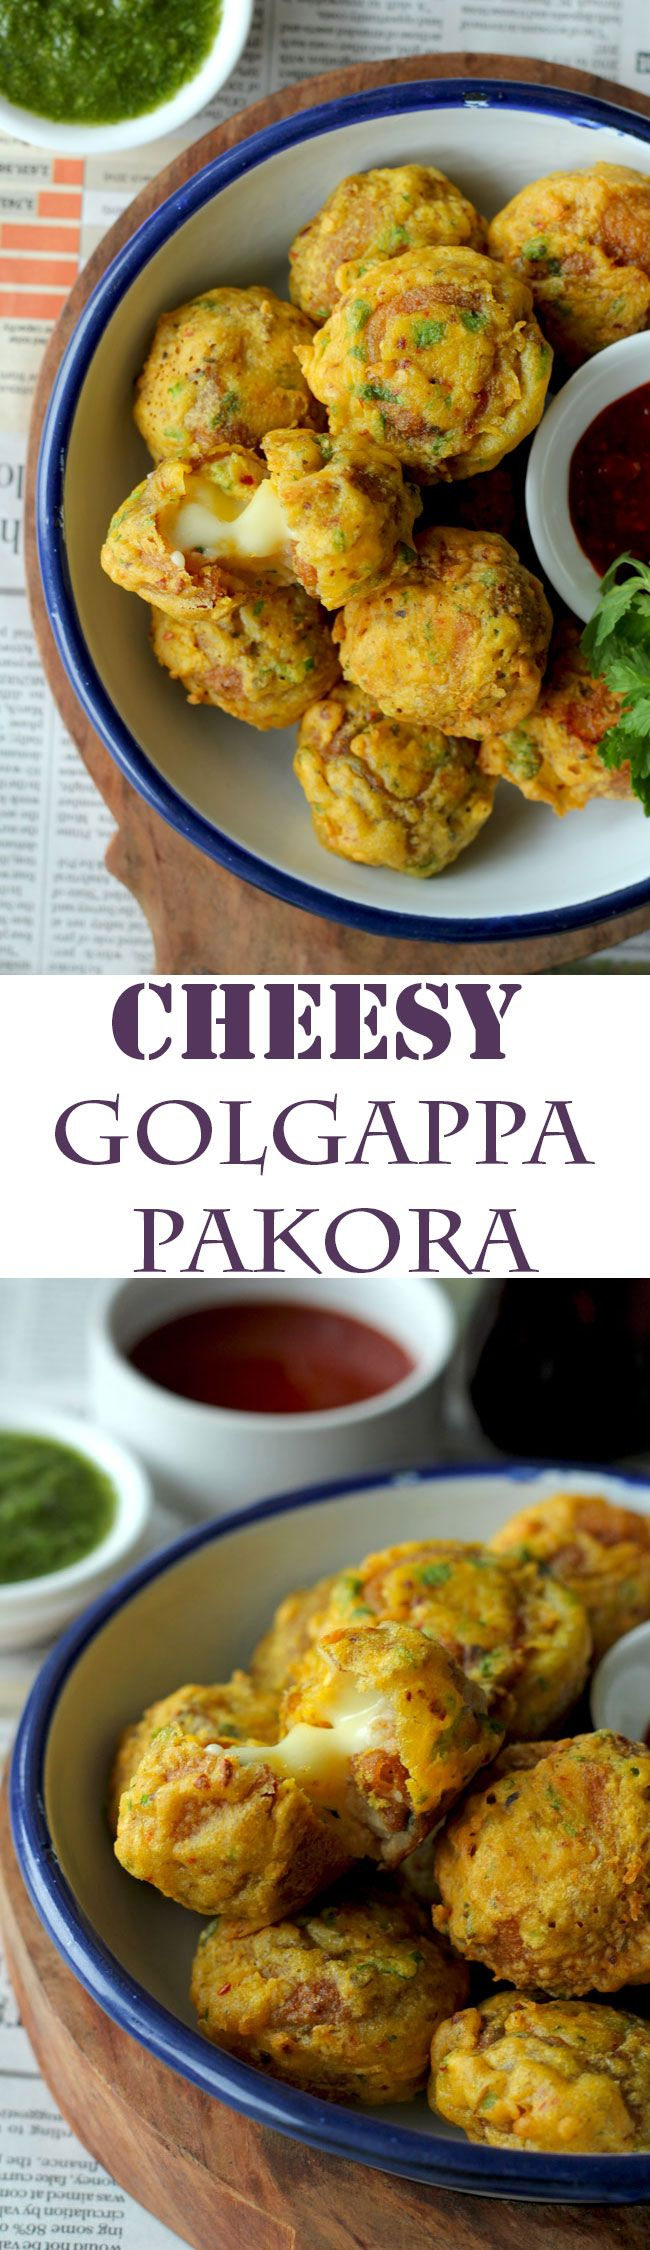 Introducing our new cool way to eat golgappa – Cheese Golgappa Pakora. The cheese golgappa pakora is the potato masala stuffed Indian style fritters loaded with cheese. #indianfood #snacks #indian funfoodfrolic.com